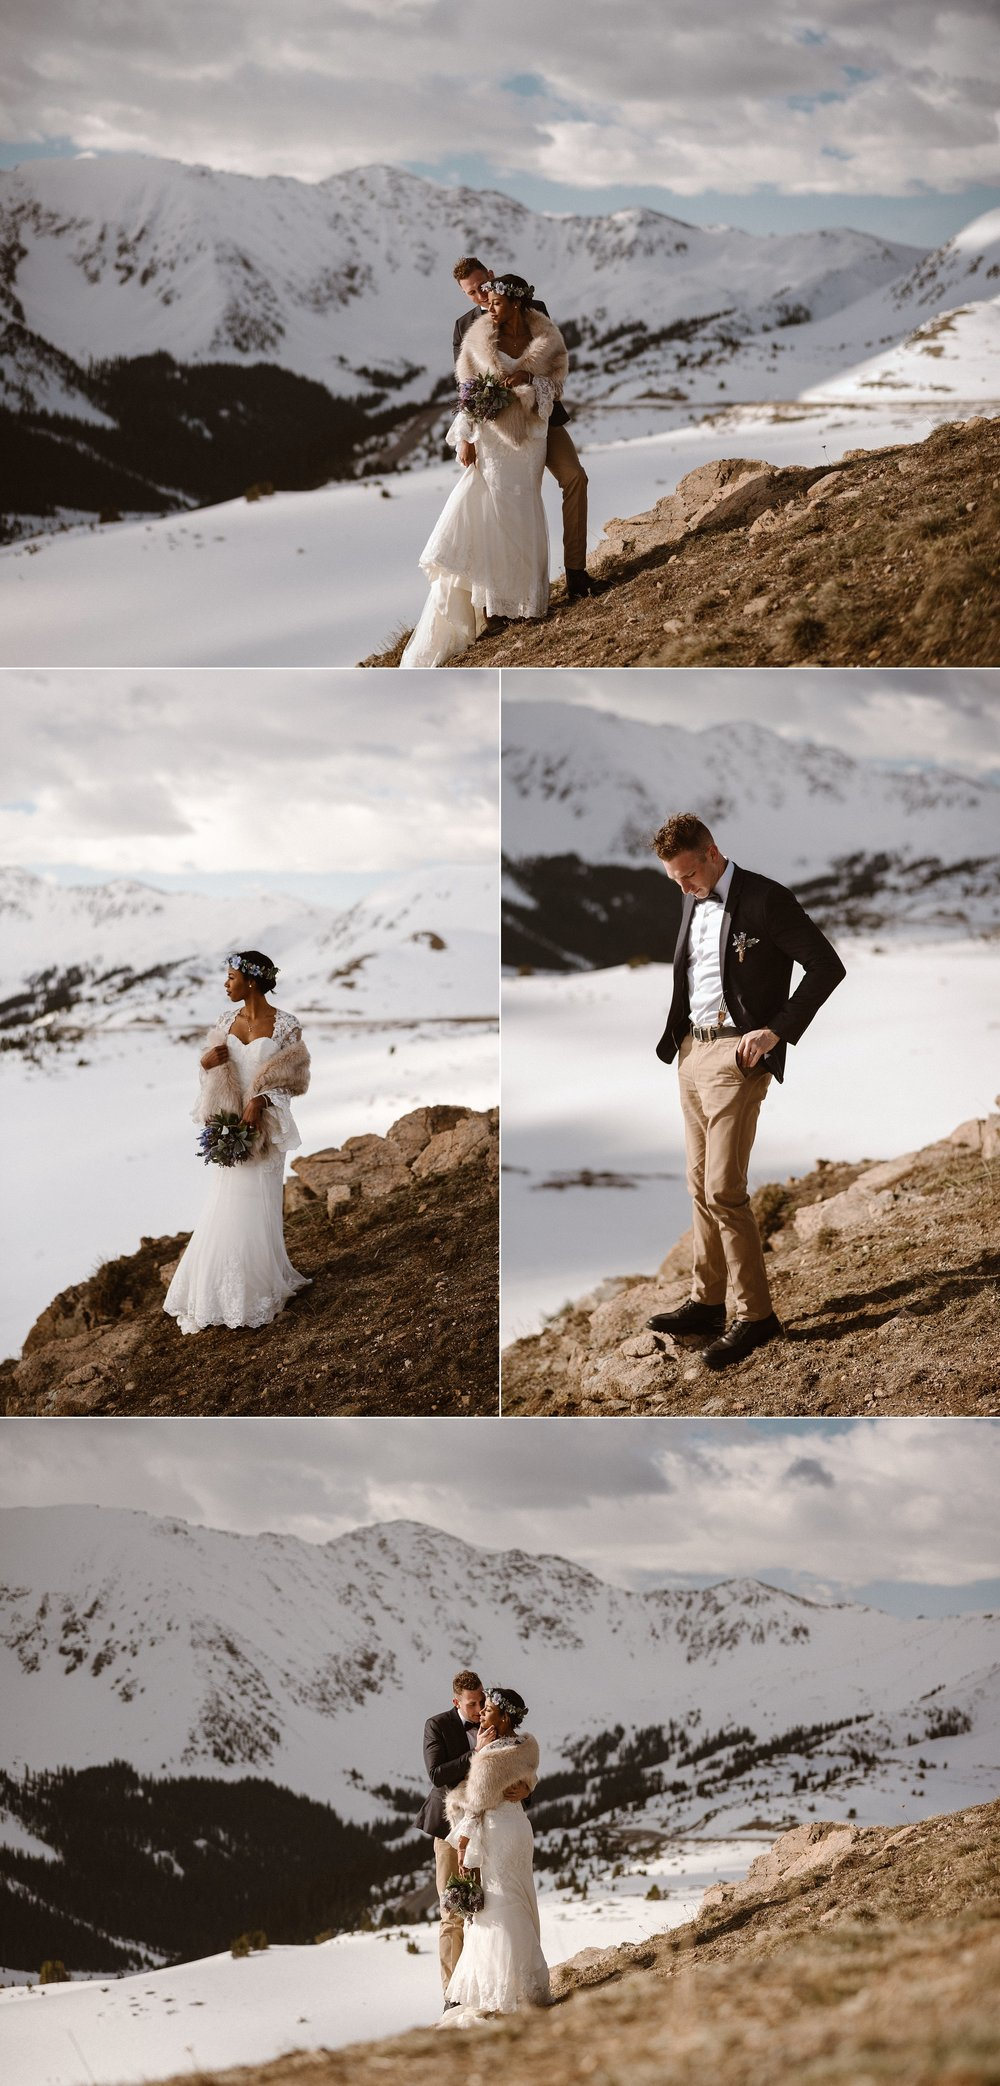 Stopping with the snowy Rocky Mountains behind them Jared and Mikayla shared a playful moment among the spring snow of Loveland Pass. Their intimate elopement captured by wedding photographer Maddie Mae.